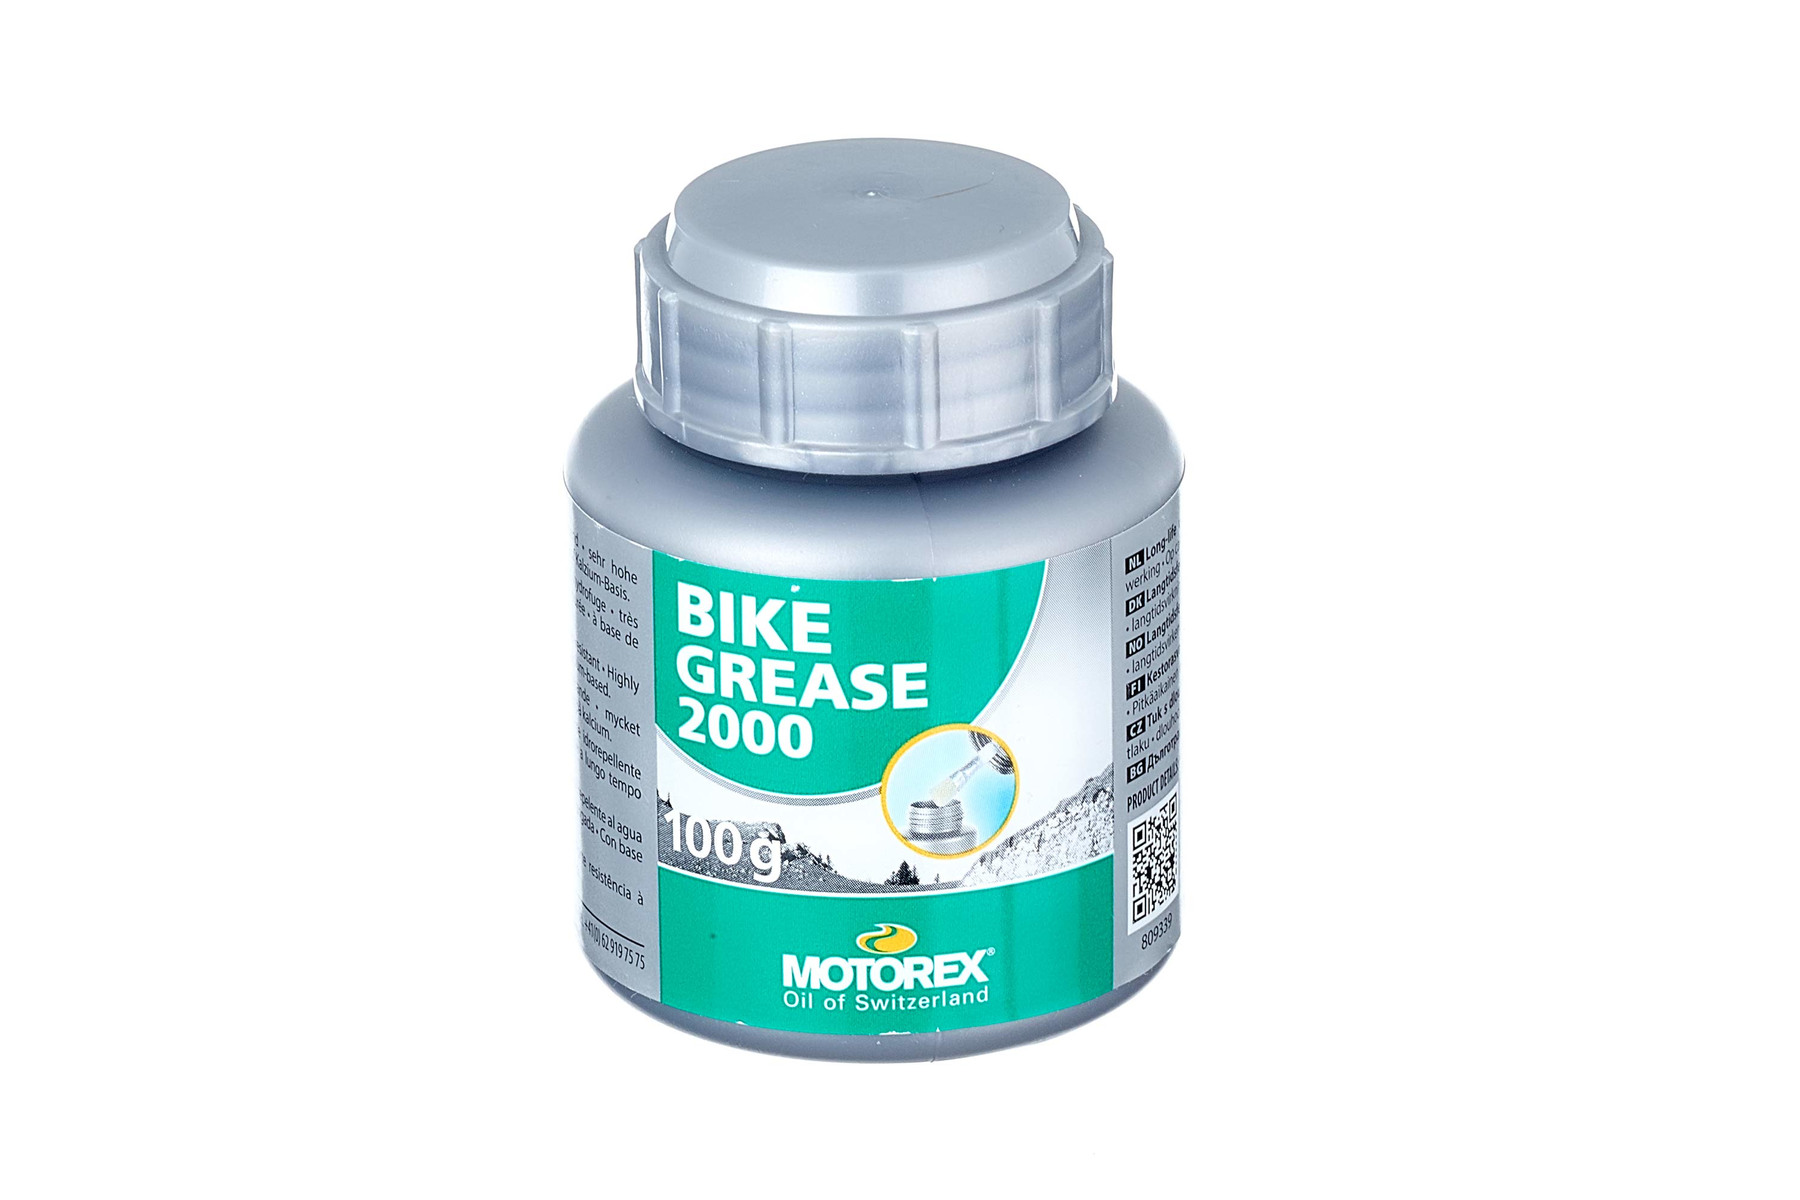 Motorex Bike Grease 2000 Schmierfett